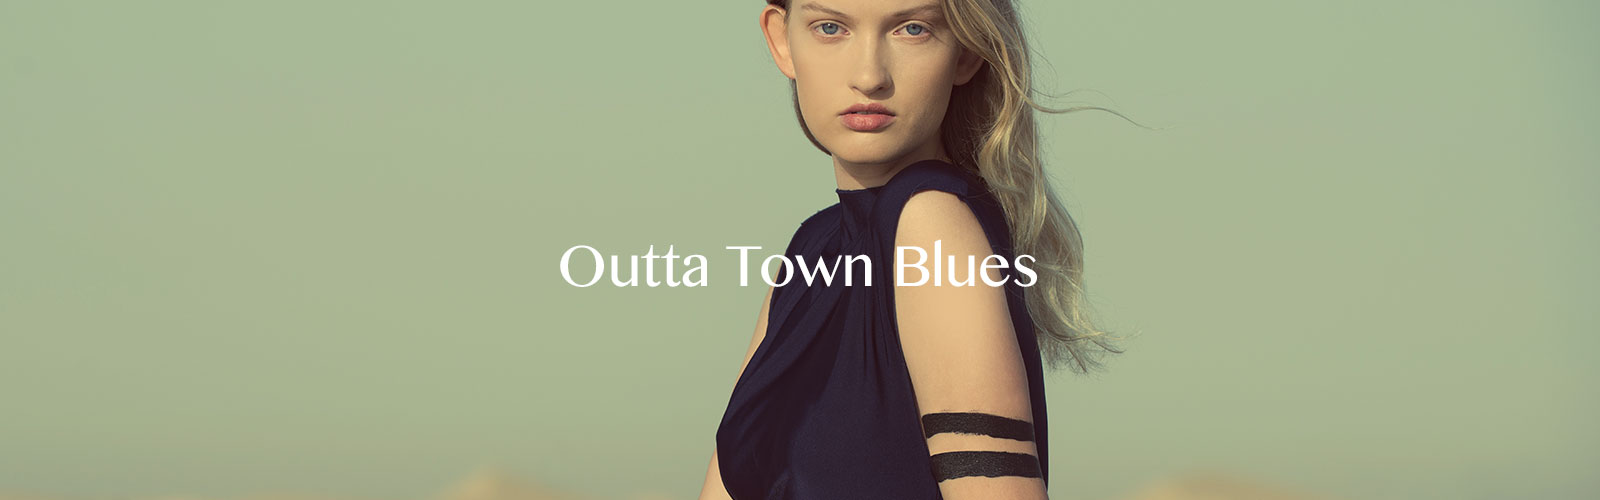 Outta-Town-Blues-header-with-text